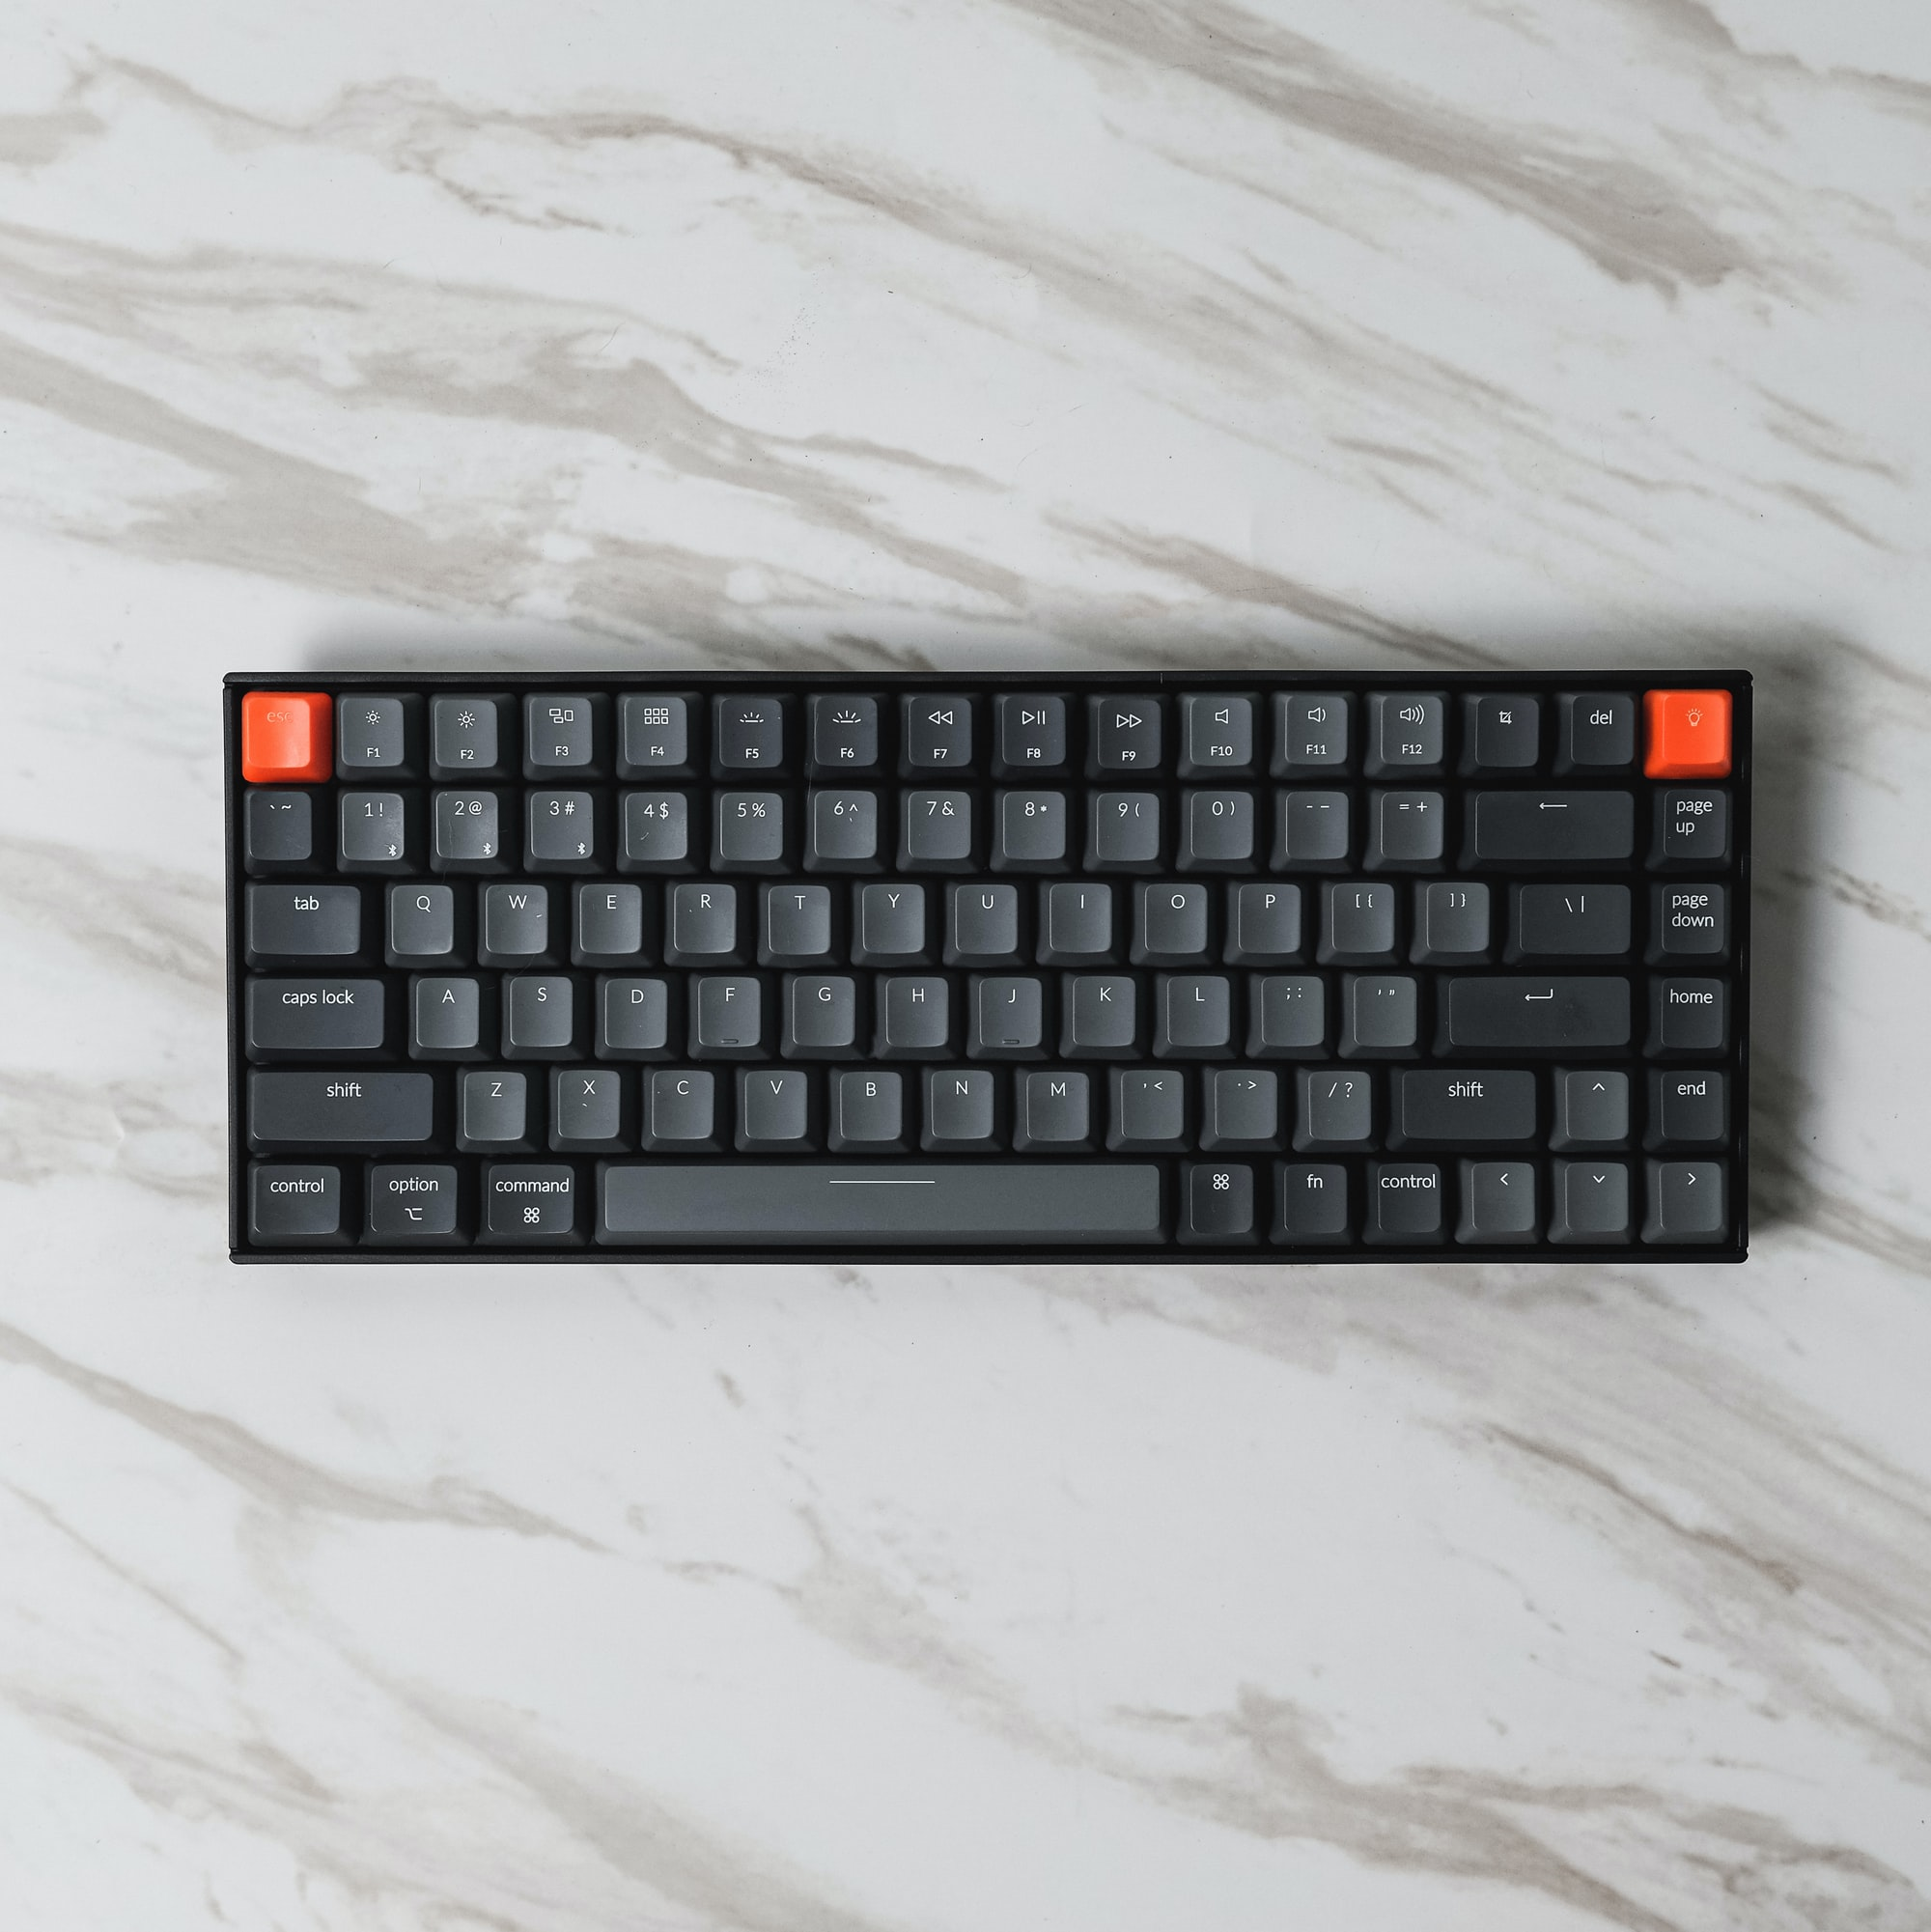 A black mechanical keyboard sitting on a marble surface